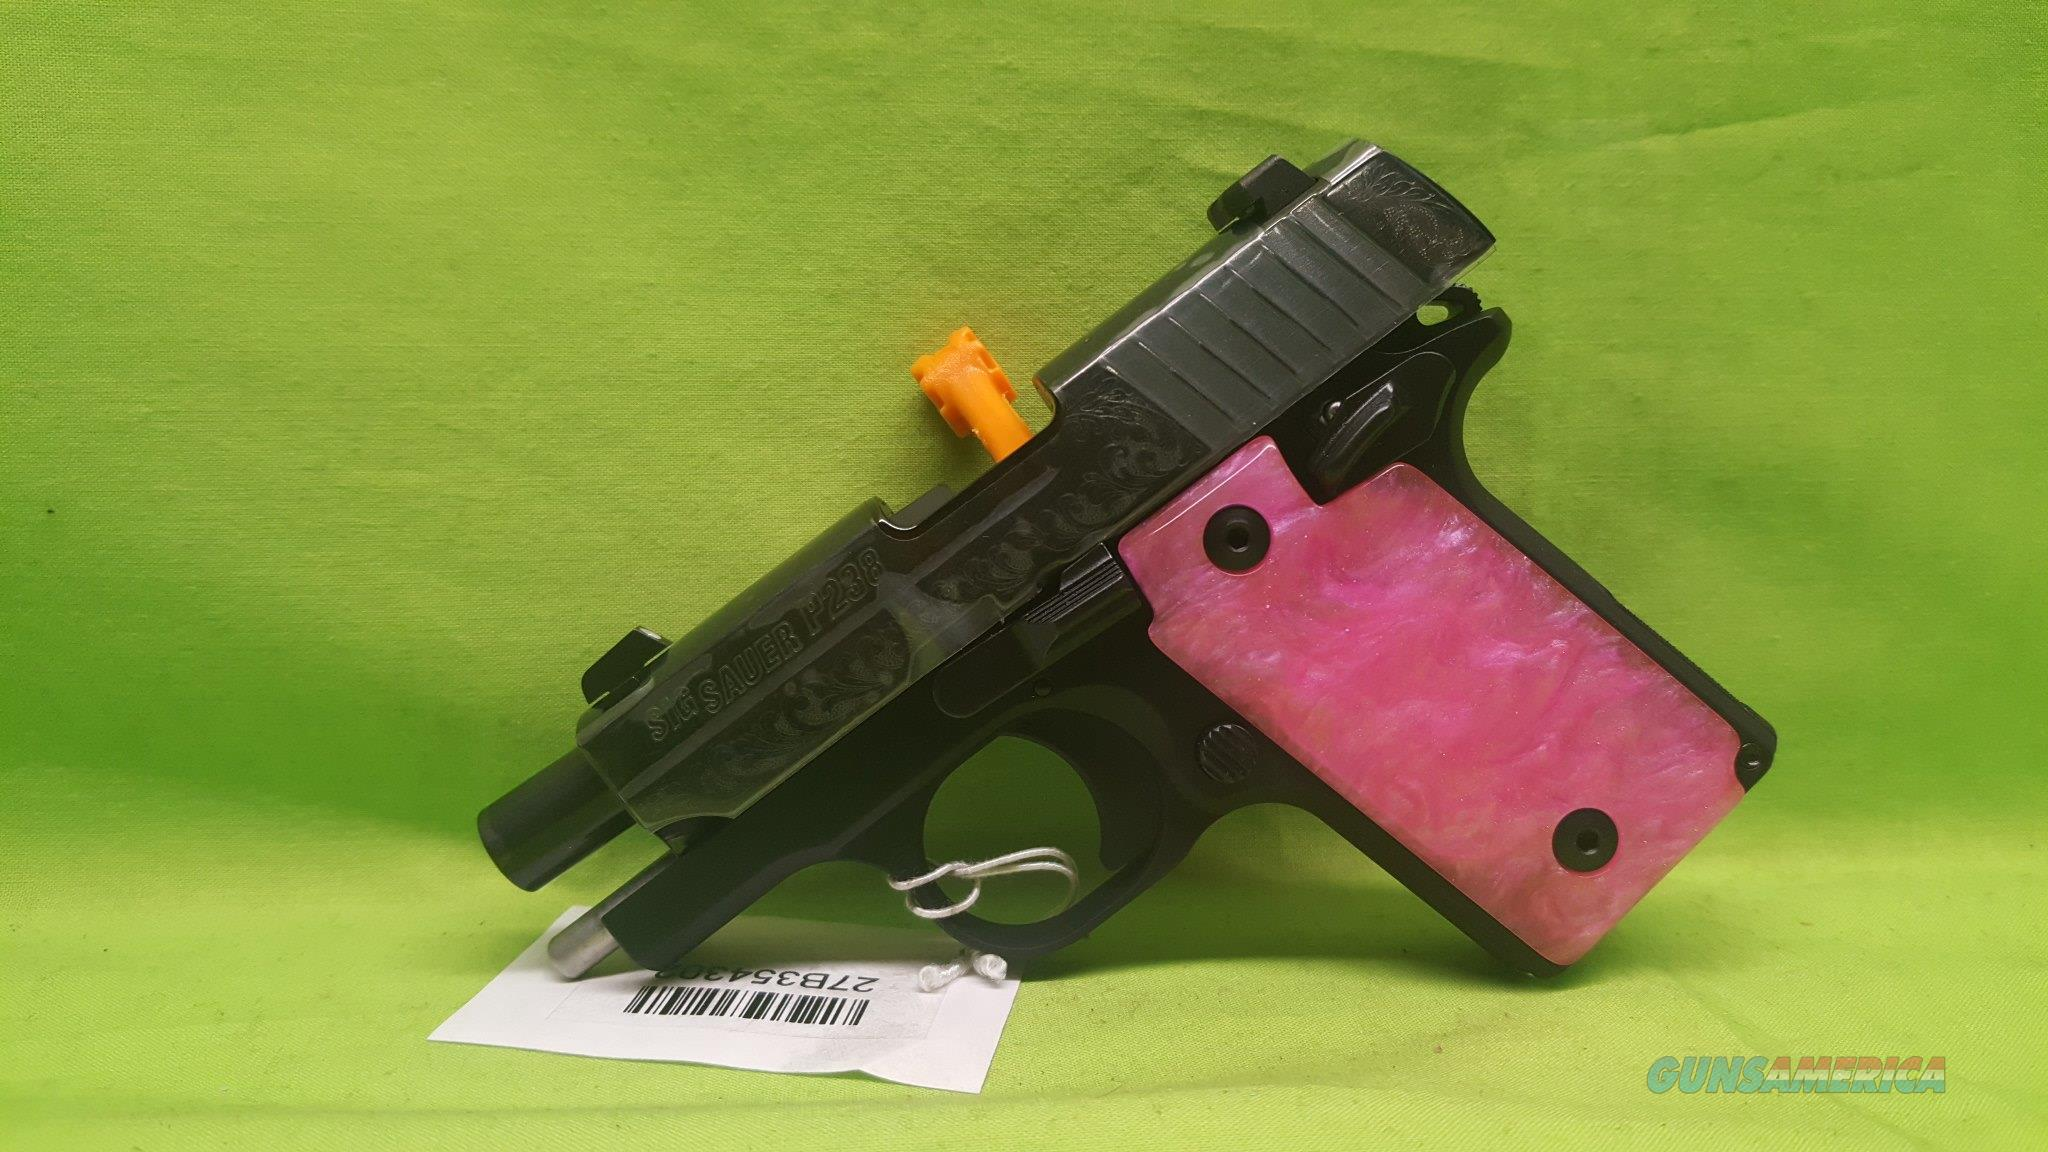 SIG SAUER P238 238 380ACP 6RD BLACK PINK ENGRAVED  Guns > Pistols > Sig - Sauer/Sigarms Pistols > P238